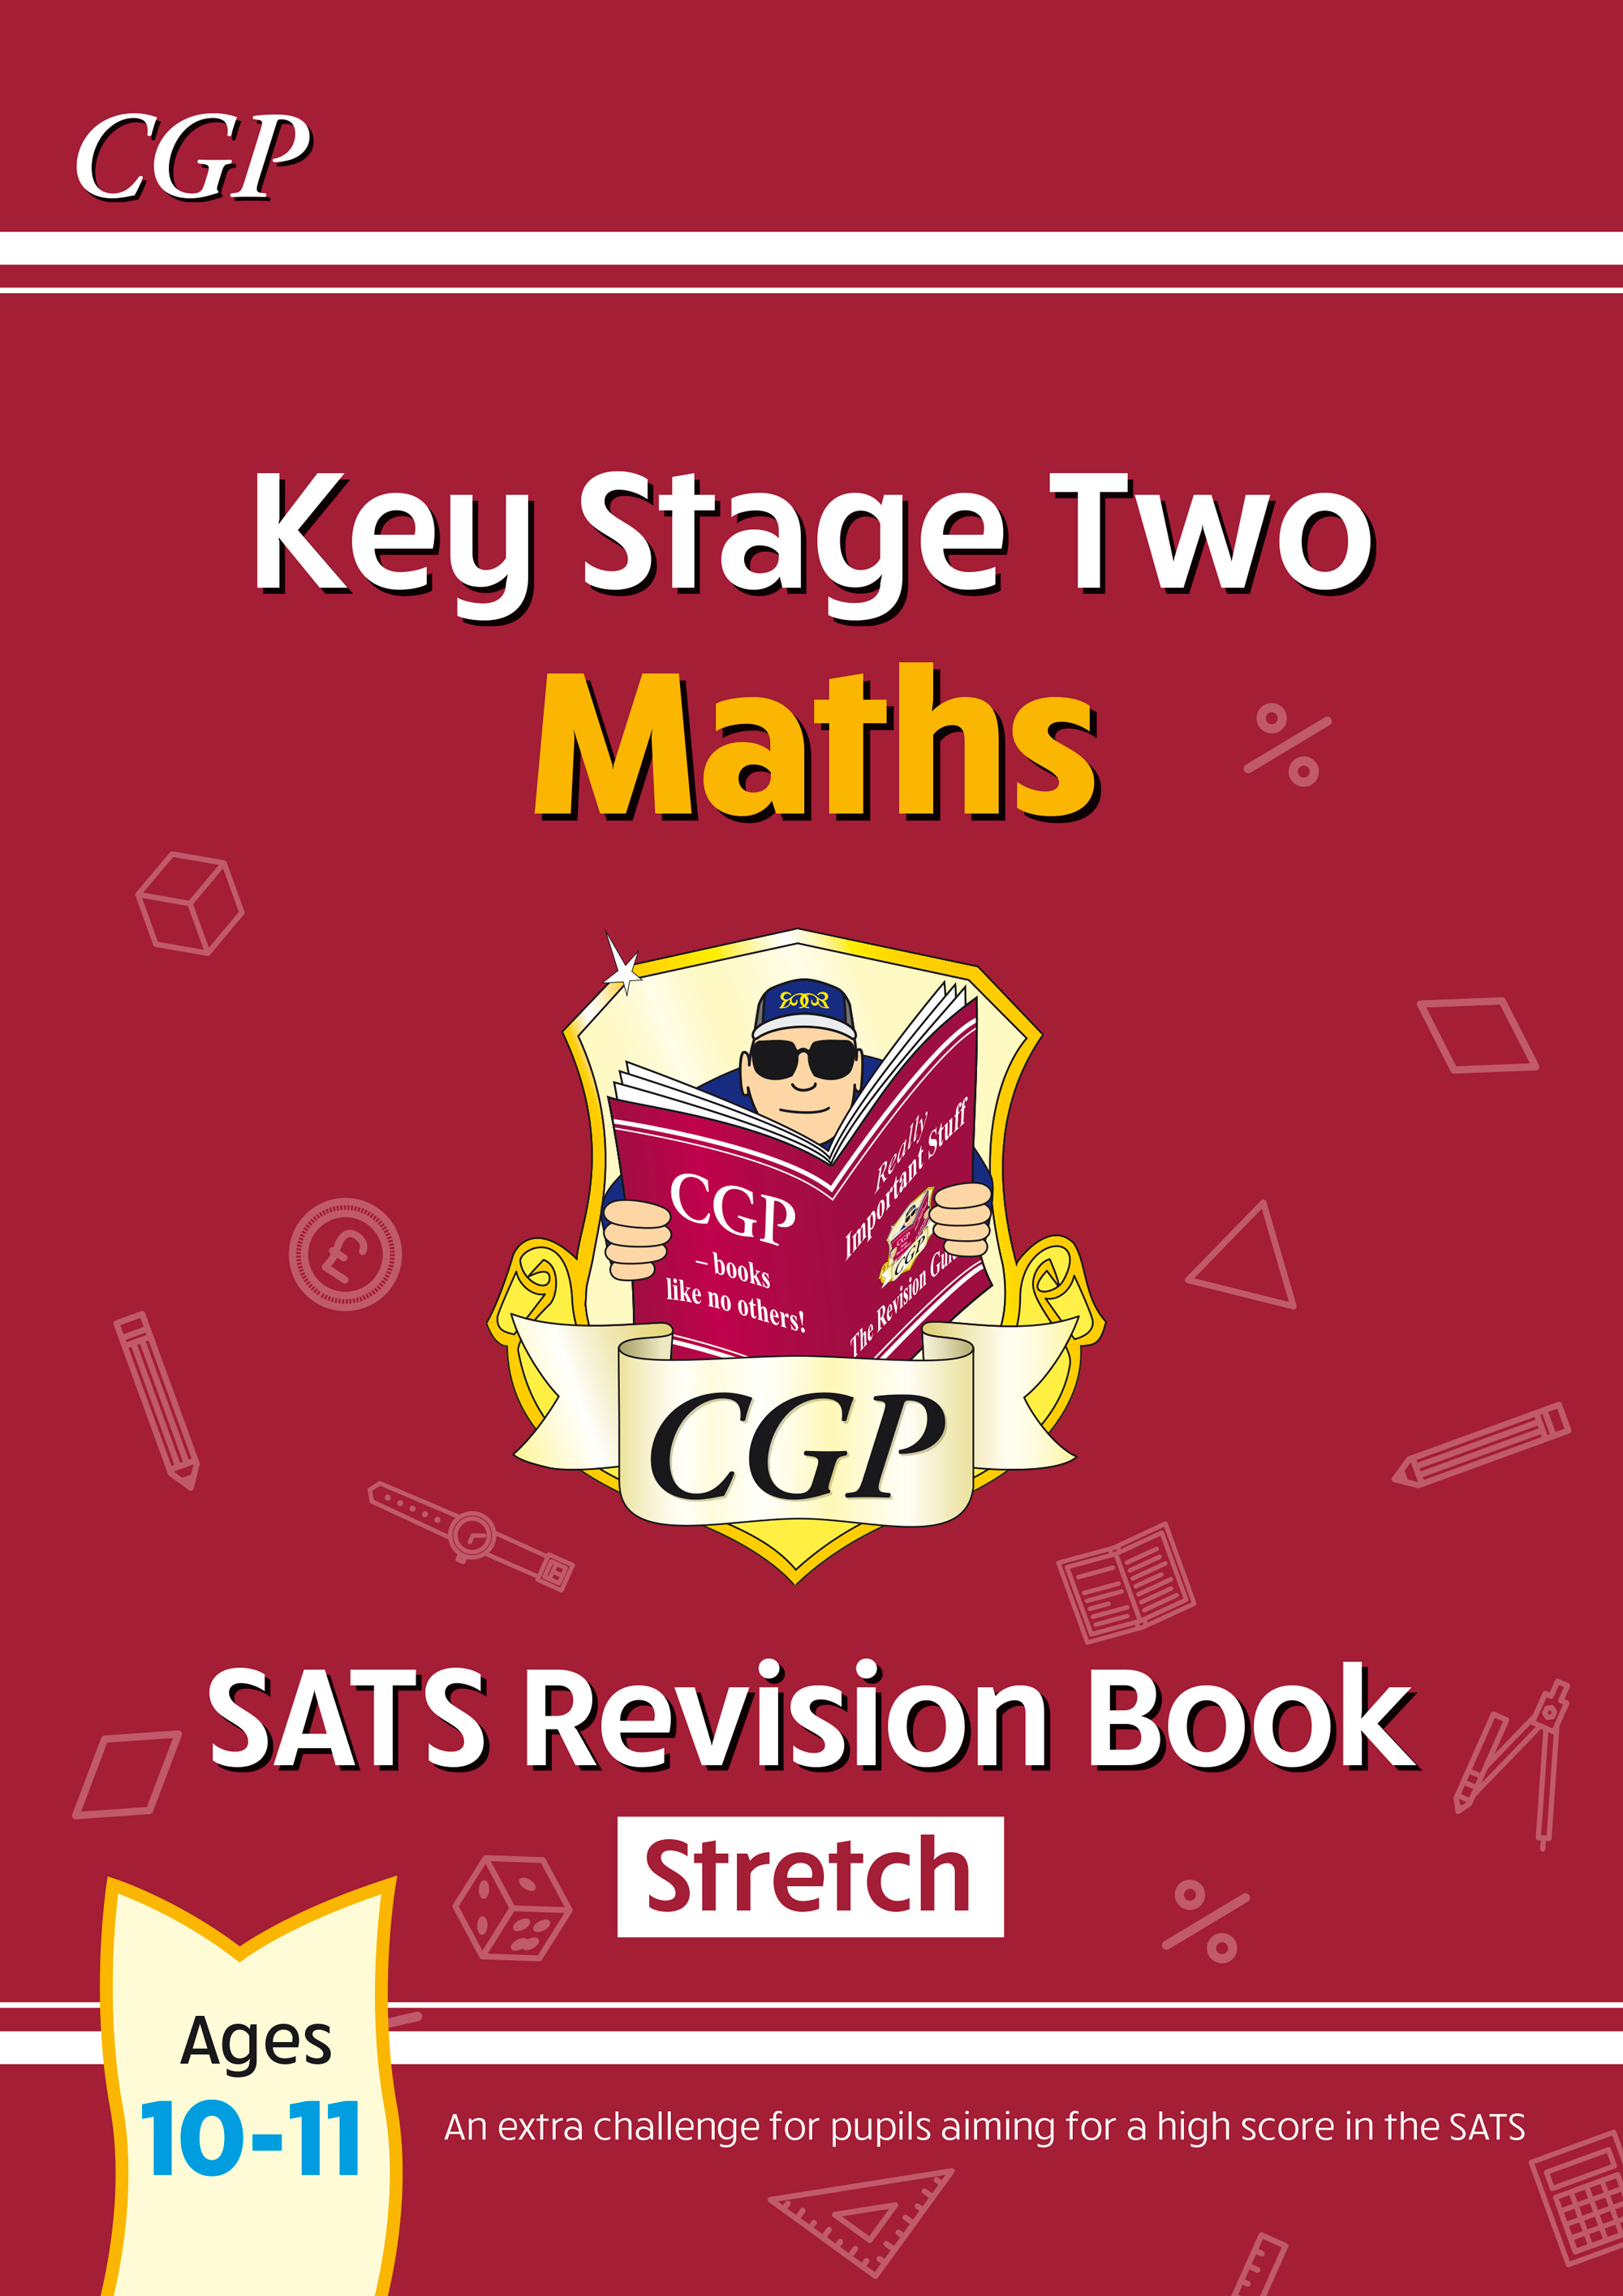 MLHR23 - New KS2 Maths SATS Revision Book: Stretch - Ages 10-11 (for the 2021 tests)